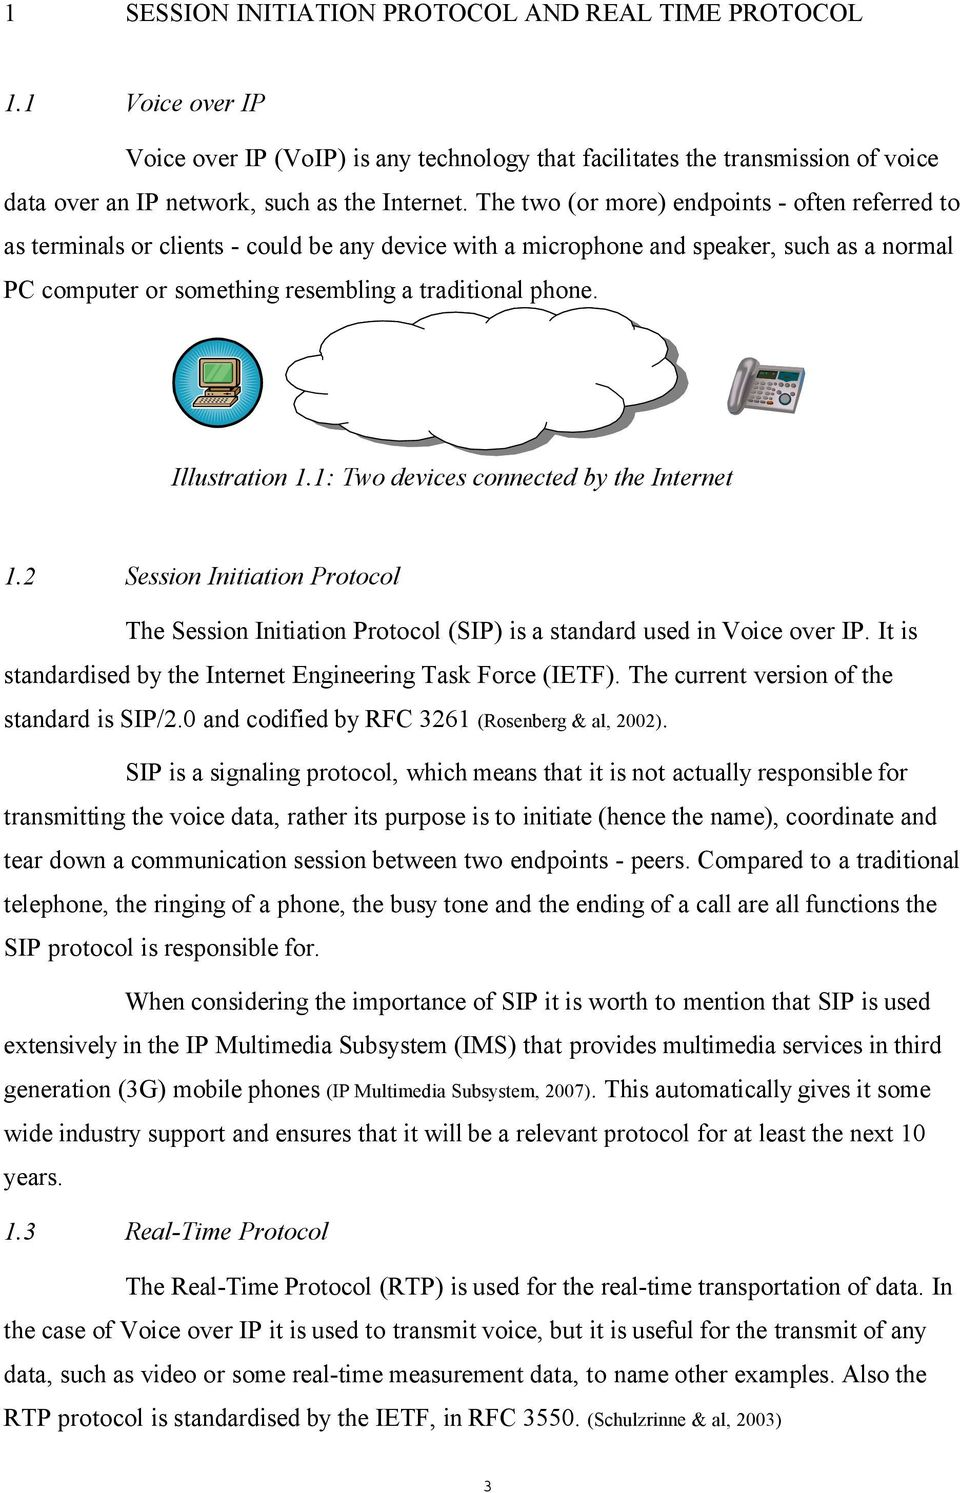 Illustration 1.1: Two devices connected by the Internet 1.2 Session Initiation Protocol The Session Initiation Protocol (SIP) is a standard used in Voice over IP.